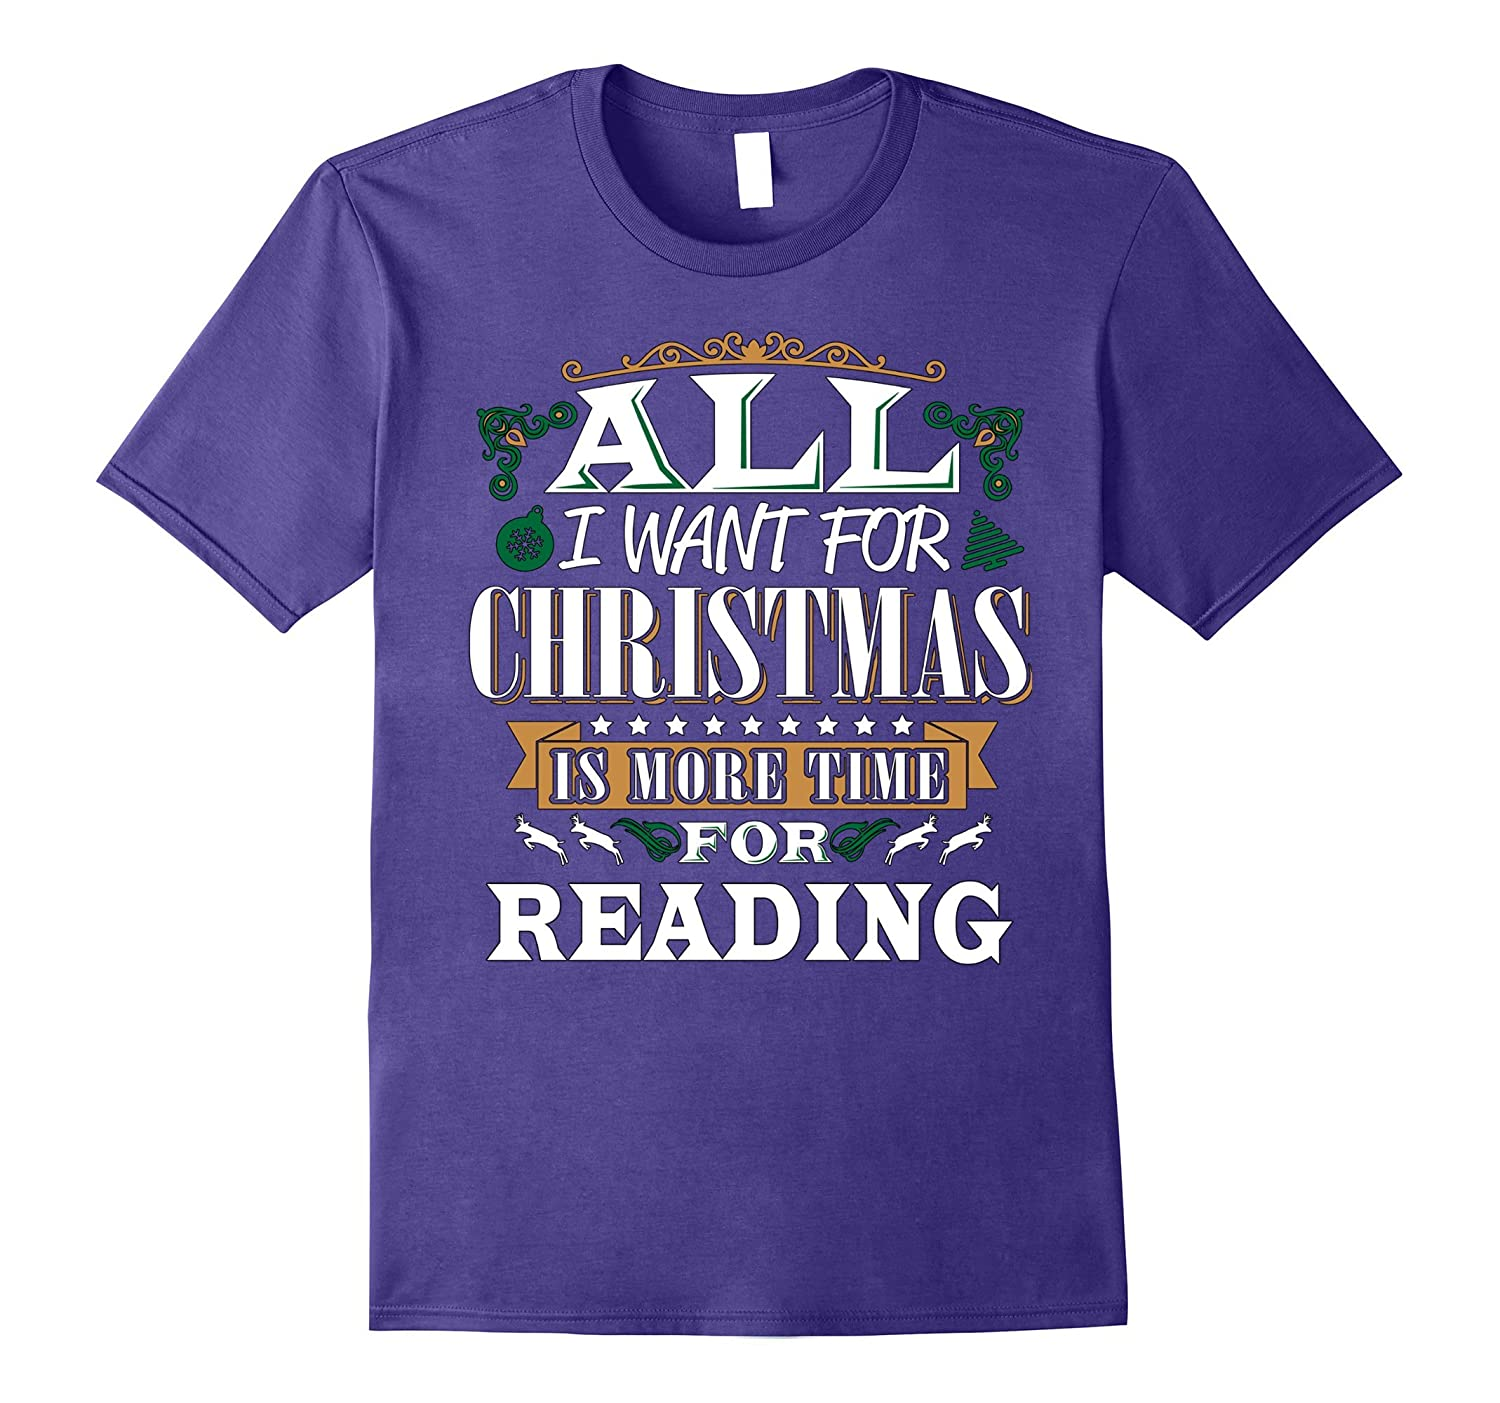 All I Want For Christmas is Time for Reading Funny T Shirt-TJ